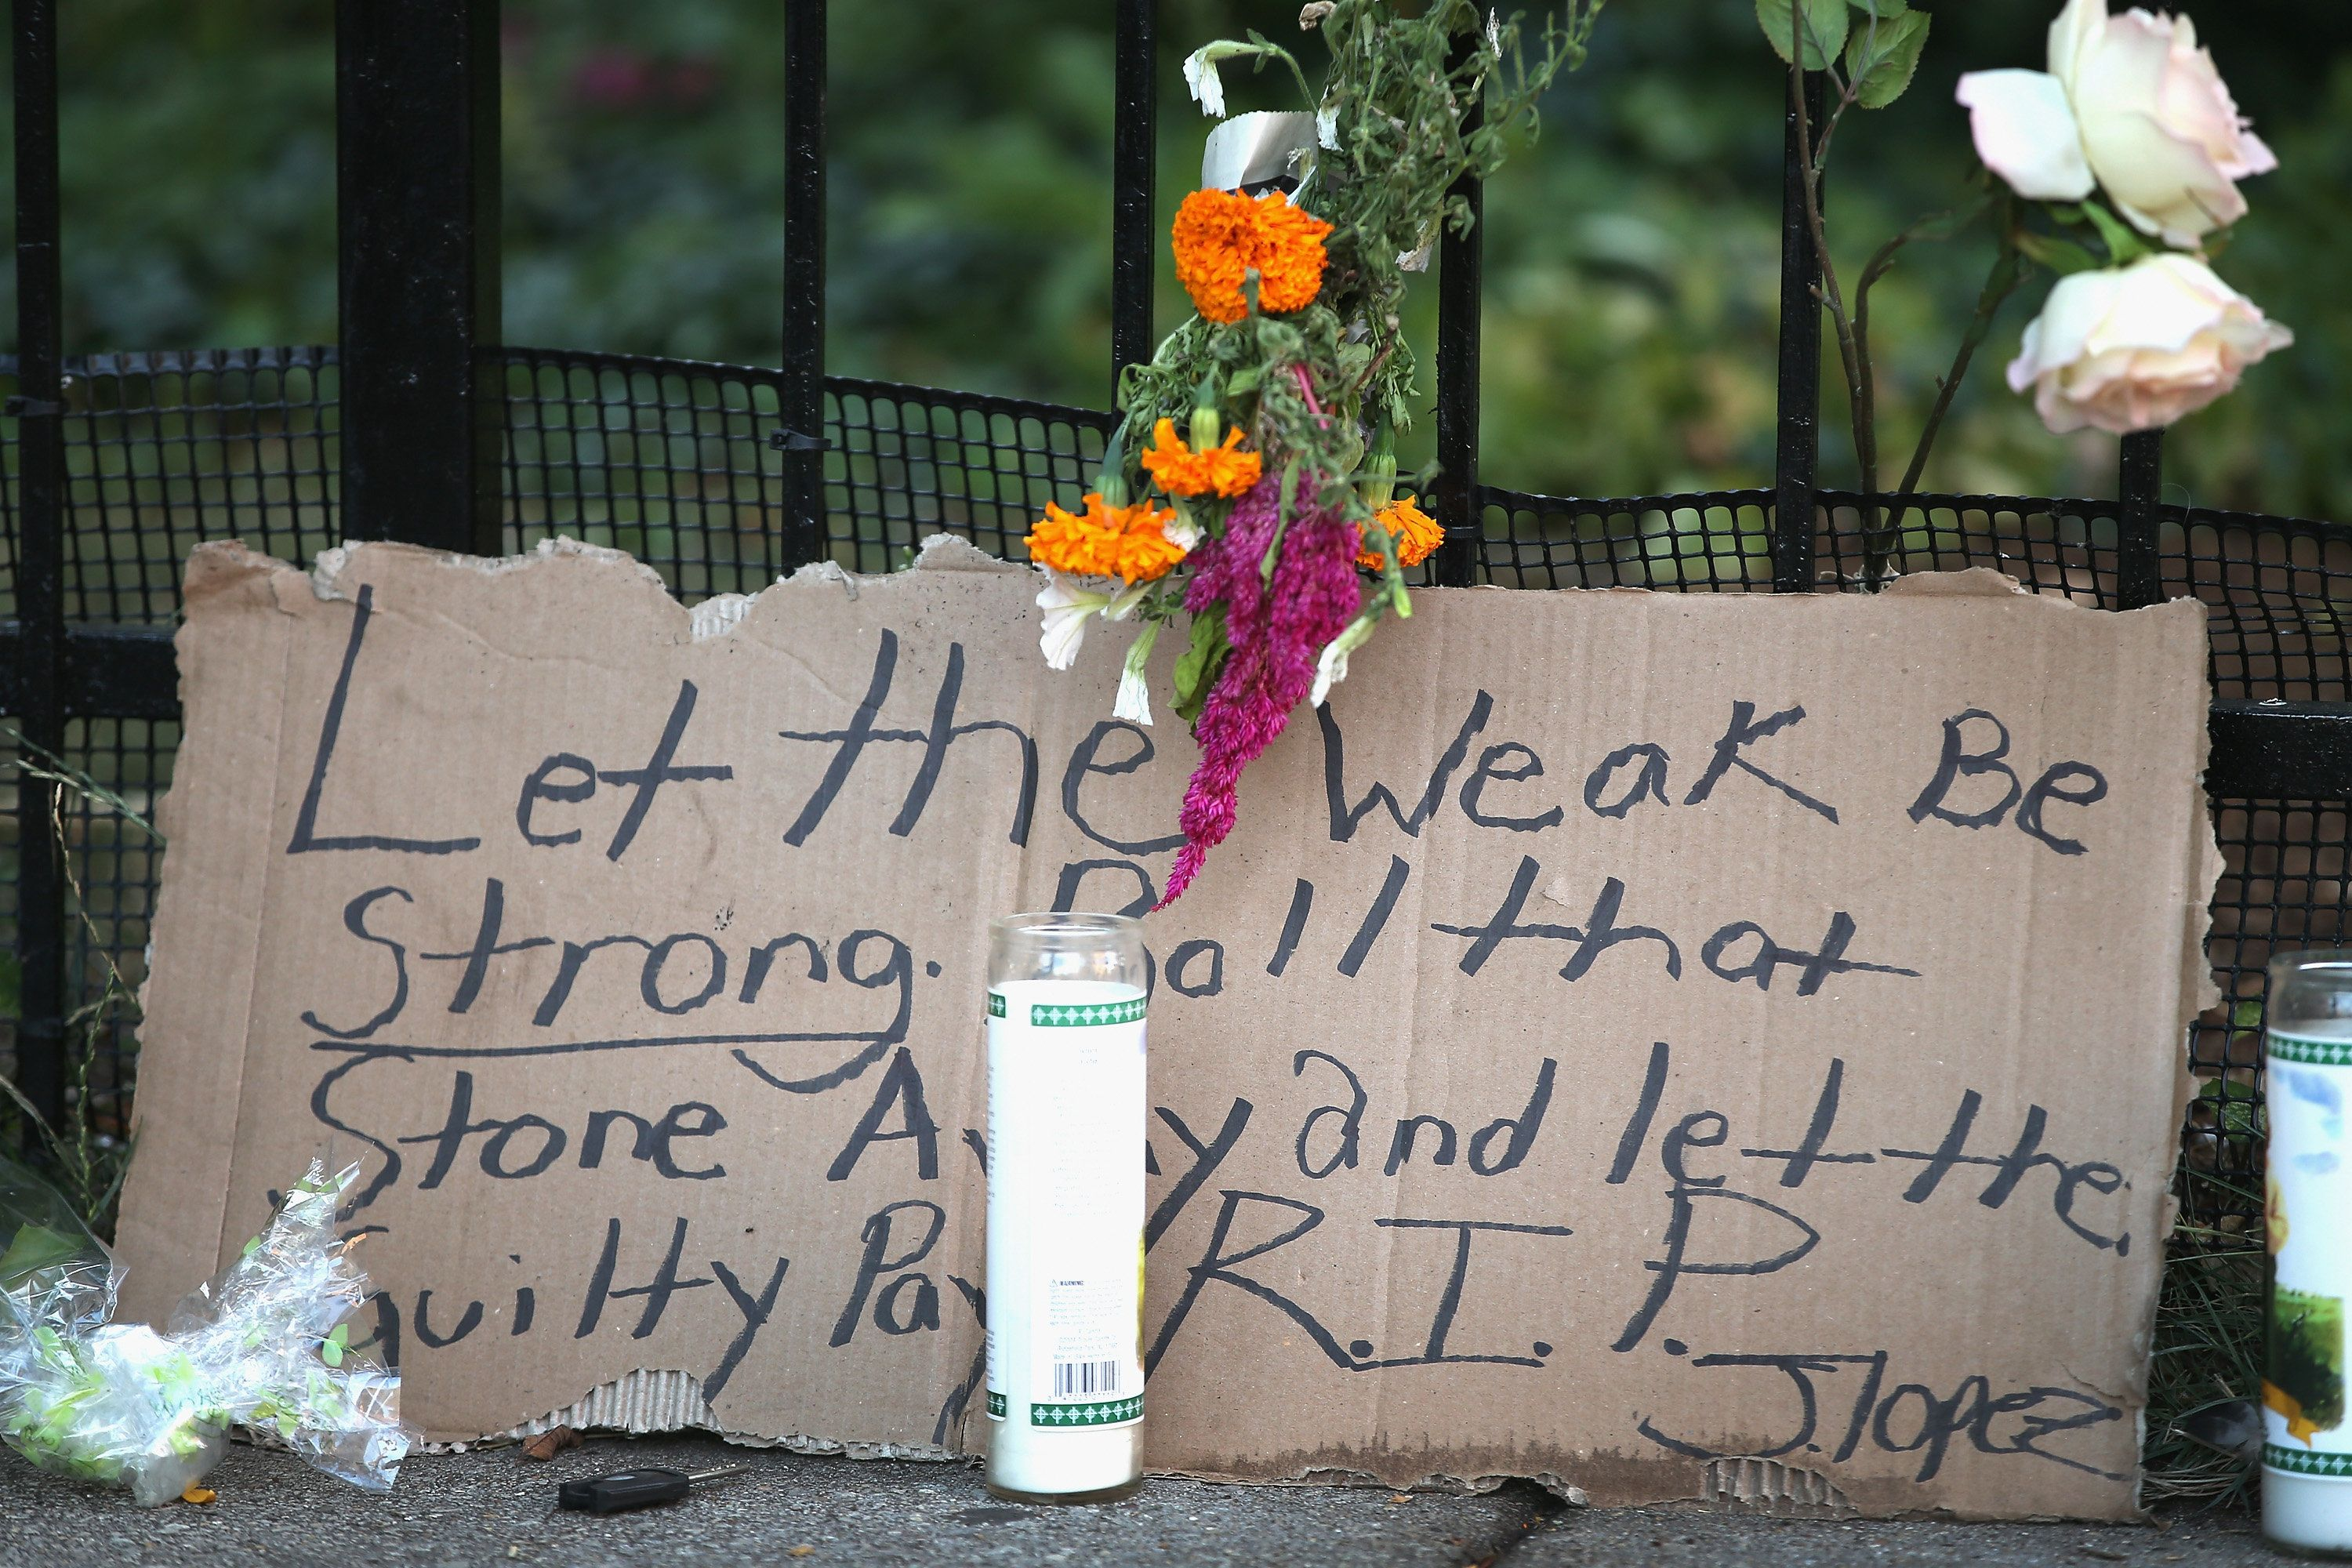 A memorial sits on the edge of the sidewalk outside the Uptown Baptist Church near where the victims of the shooting fel